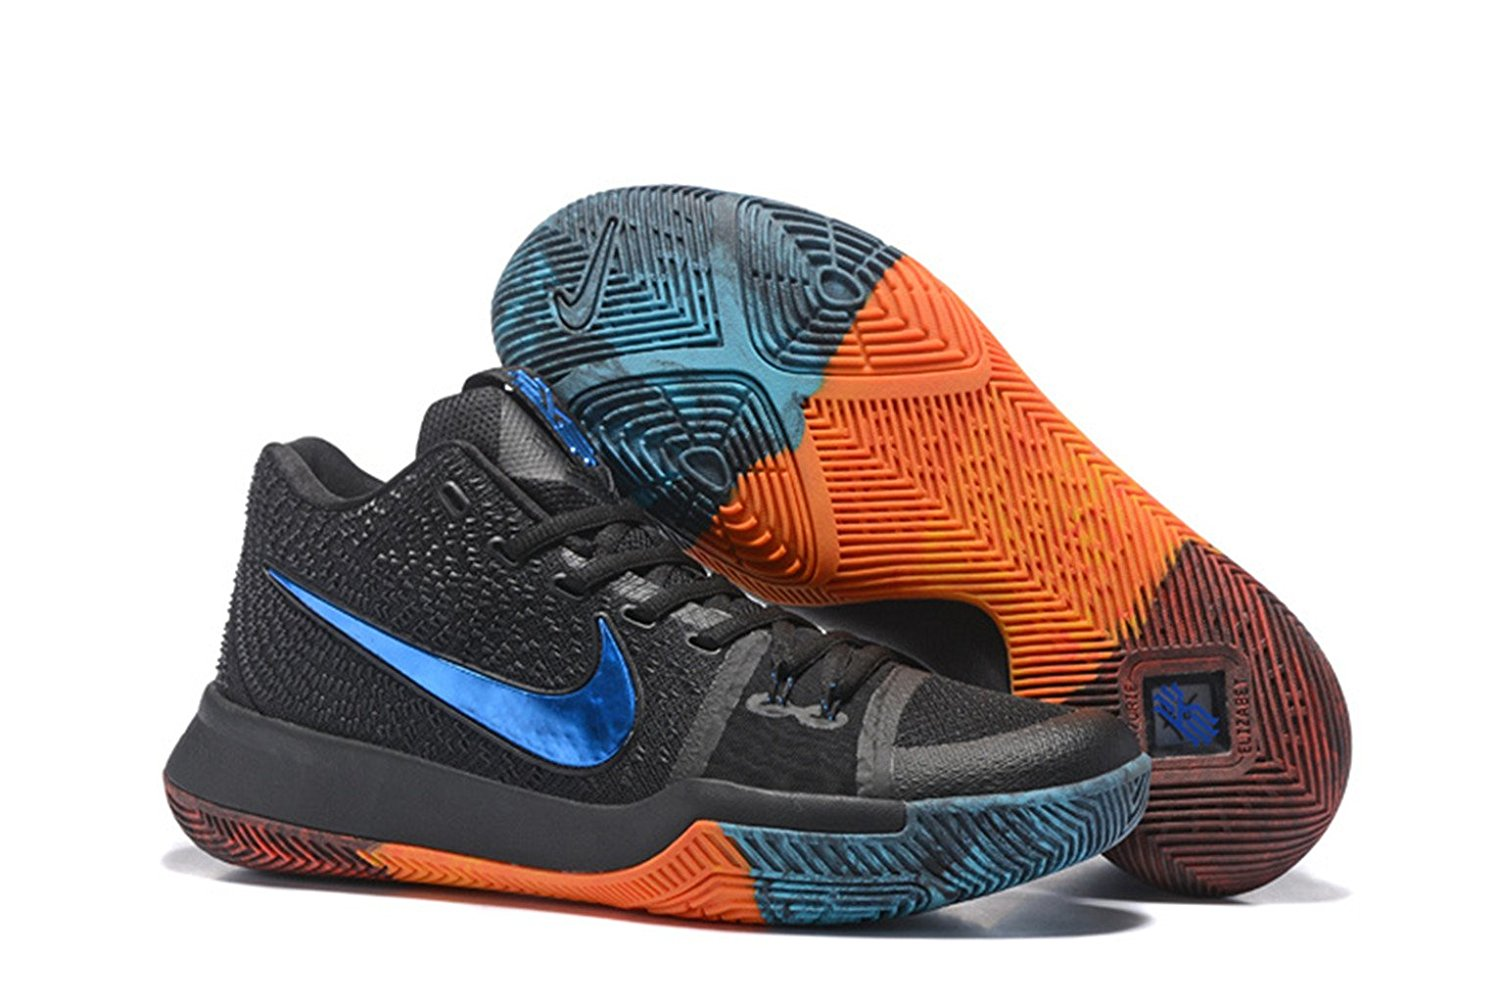 uk availability 071f3 bc32a Buy Nike Kyrie Irving 3 Basketball Shoes Black Blue in Cheap ...